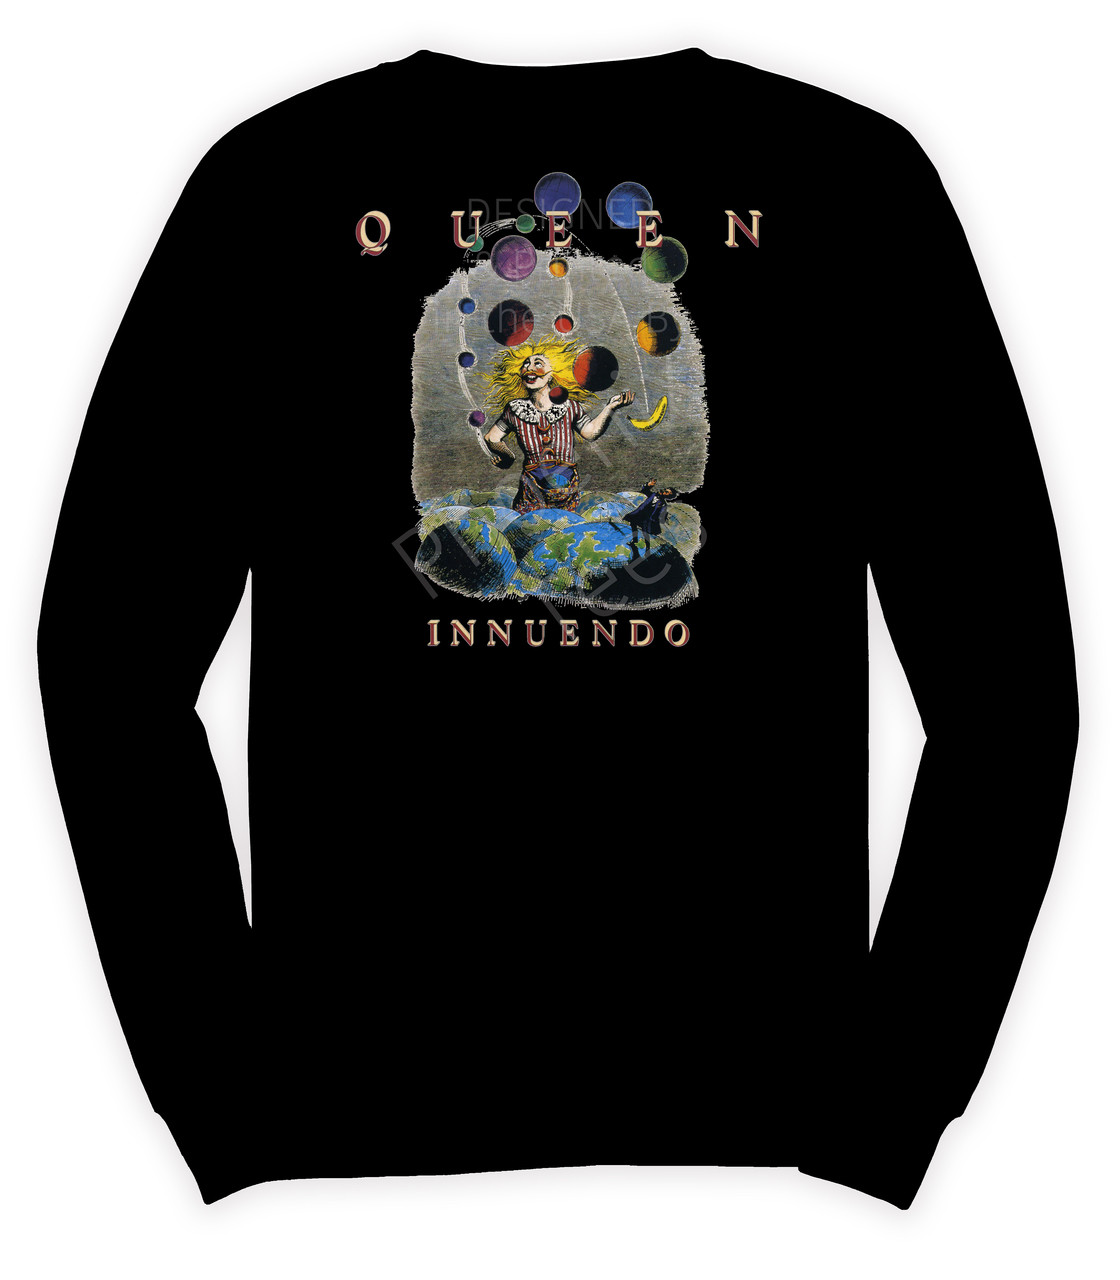 89fefb9e Queen Innuendo t shirt Queen Innuendo t shirt ...